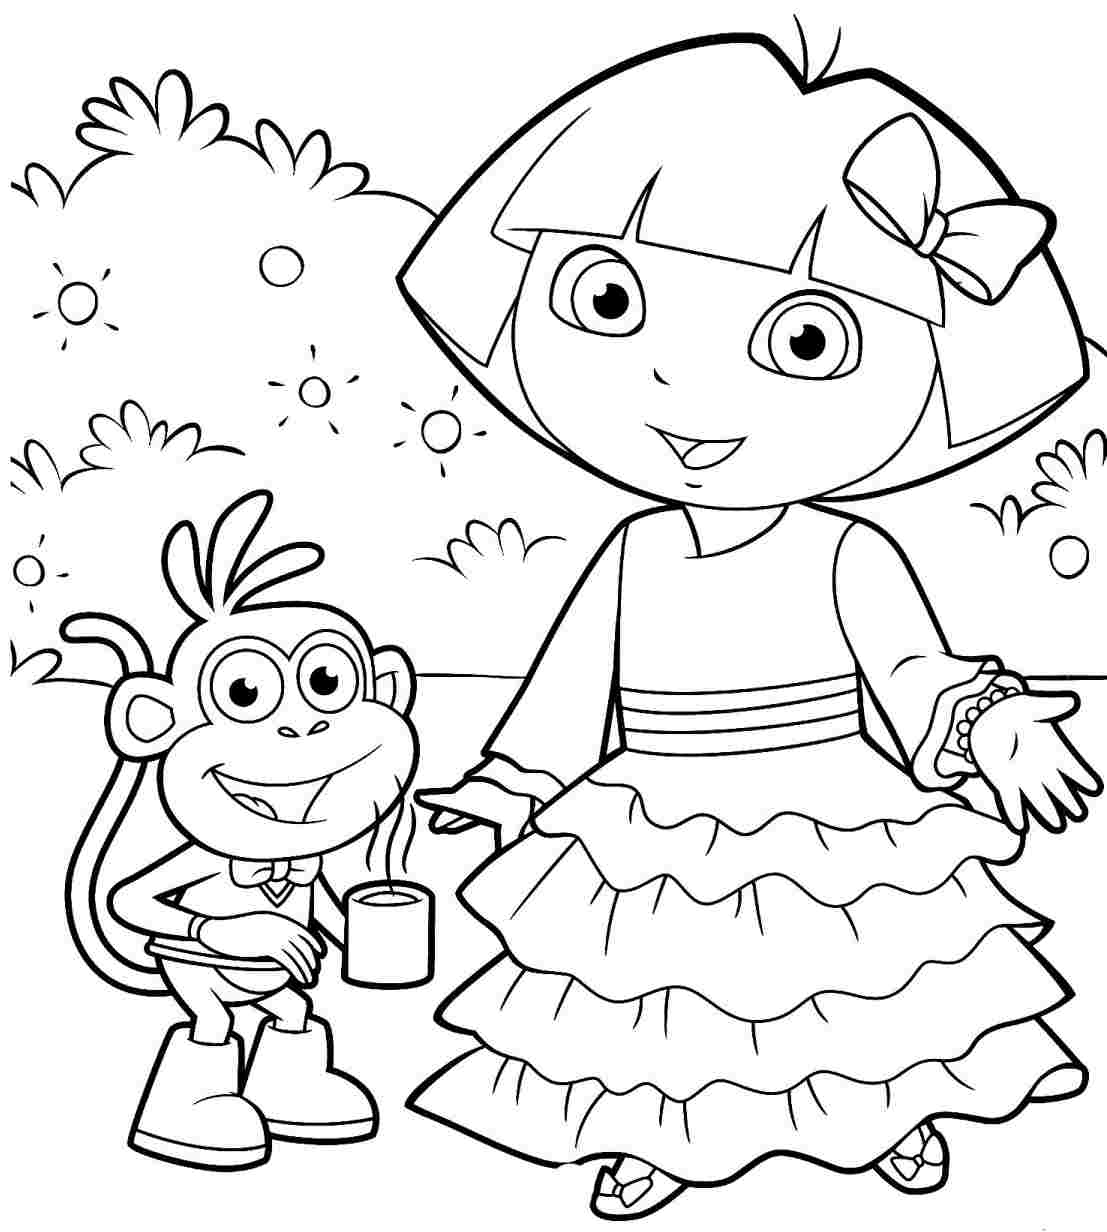 dora mermaid coloring pages free printable dora coloring pages for kids cool2bkids dora mermaid pages coloring